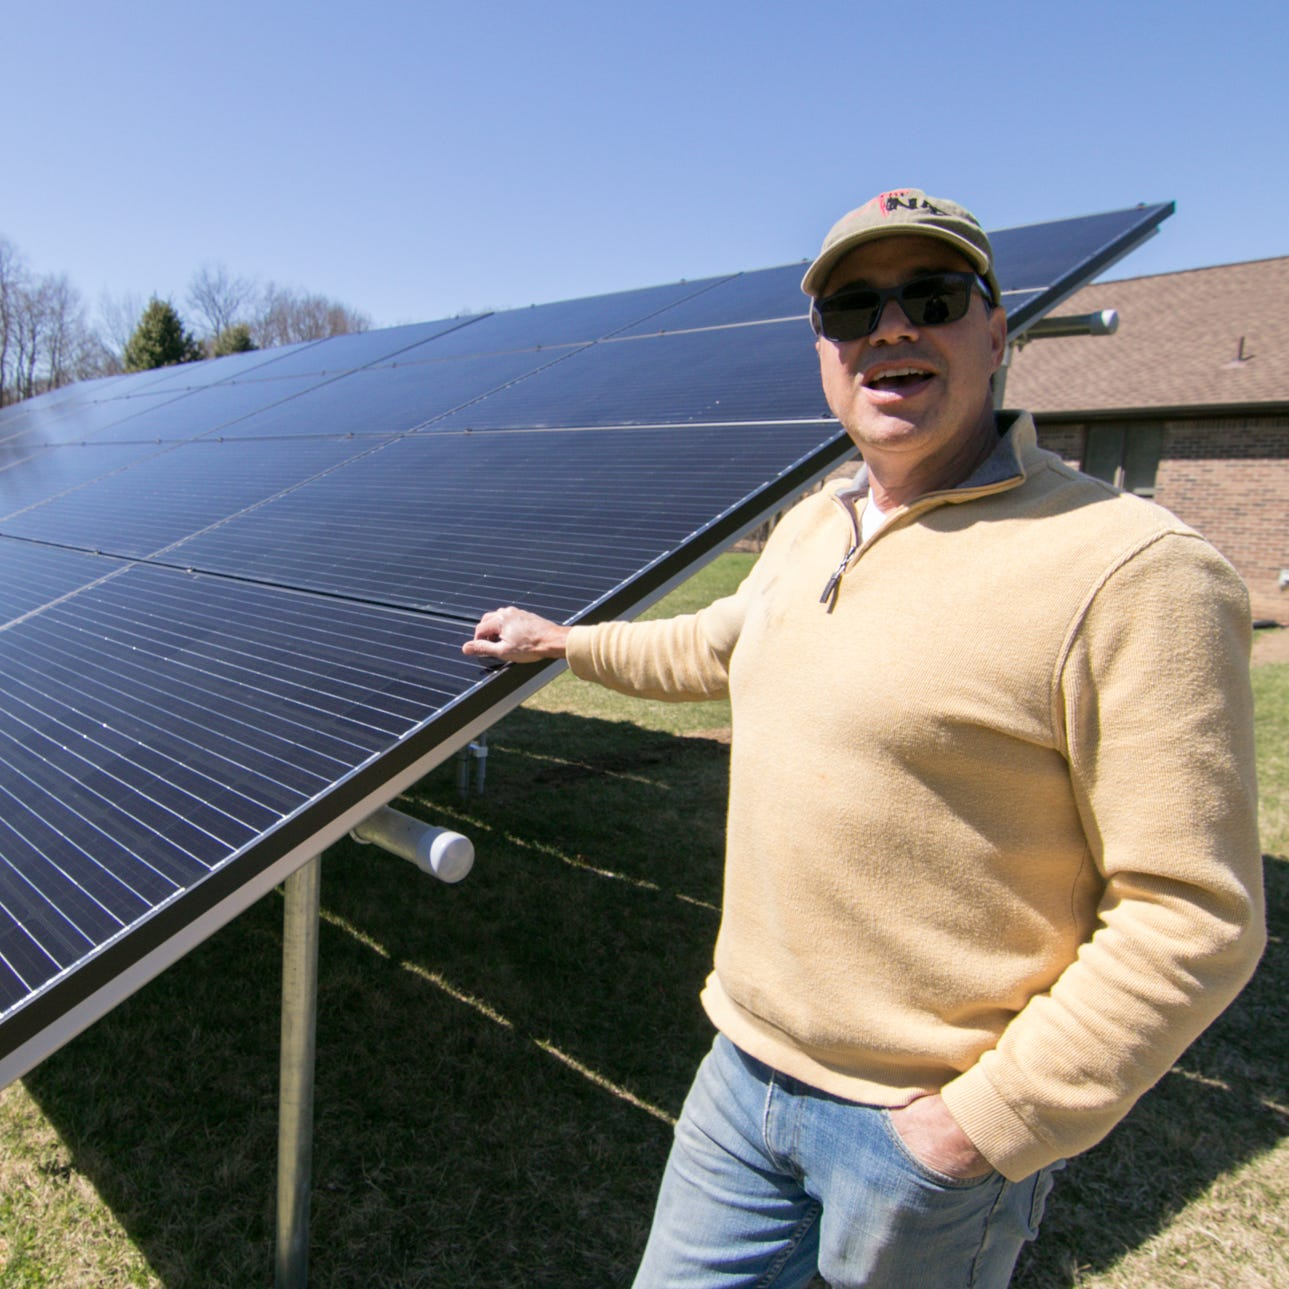 Some local communities adapting rules as solar power popularity grows across Michigan